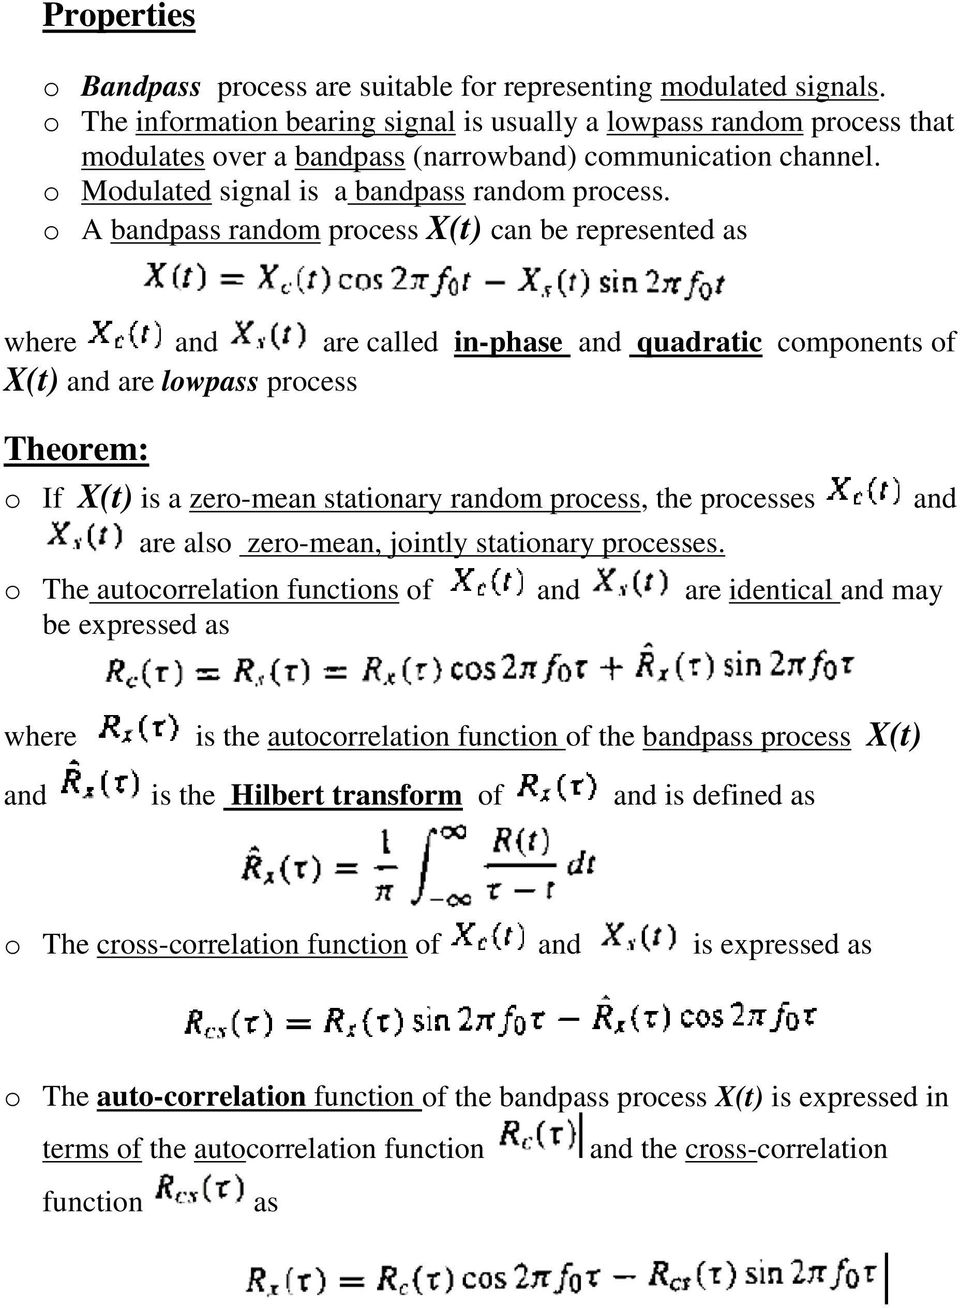 o A bandpass random process X(t) can be represented as where and are called in-phase and quadratic components of X(t) and are lowpass process Theorem: o If X(t) is a zero-mean stationary random